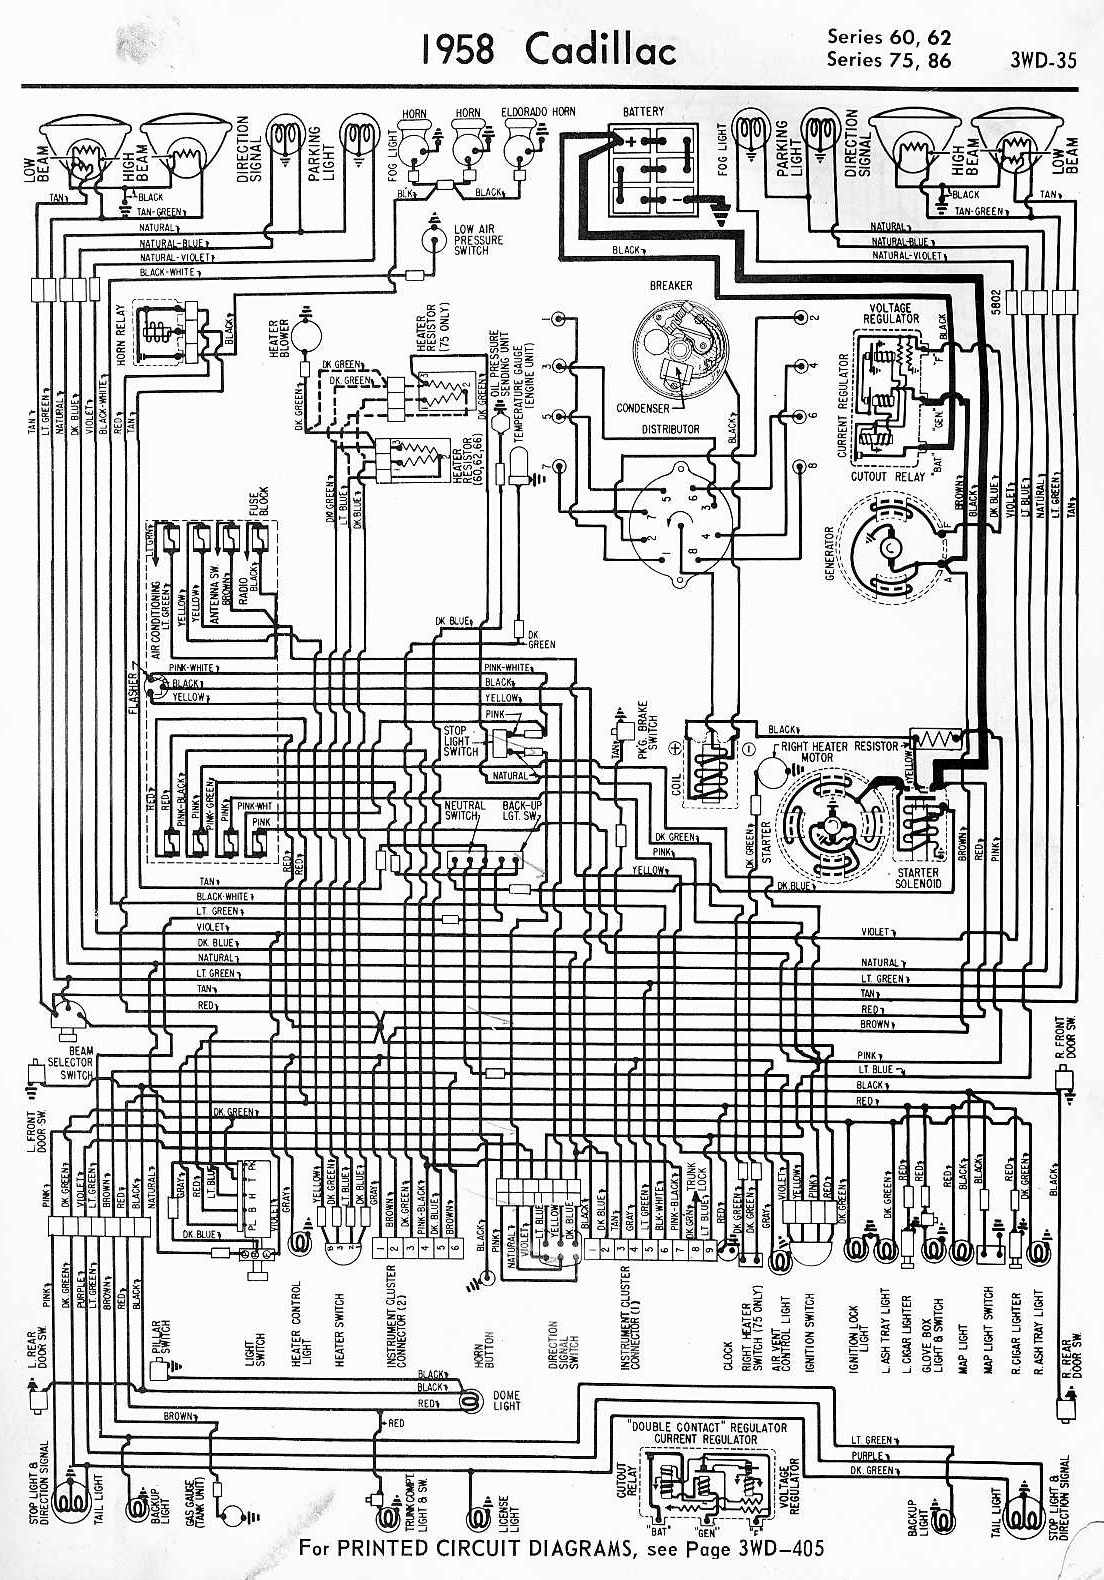 1973 Cadillac Coupe Deville Distributor Wiring Diagram Wiring Diagram Enter Enter Lechicchedimammavale It